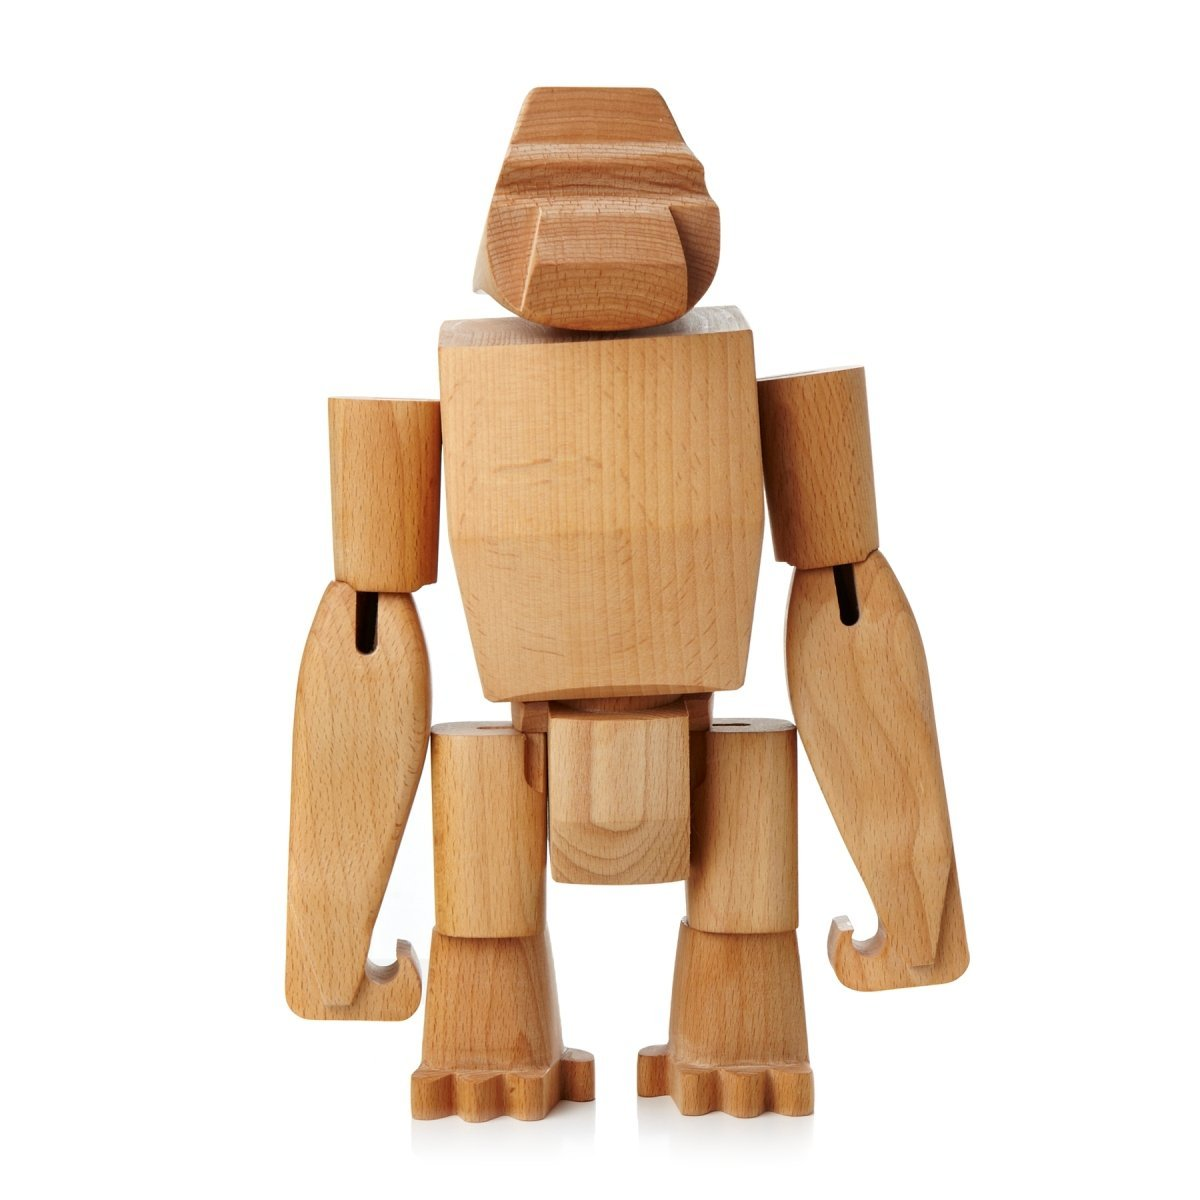 mad for midcentury midcentury modern toys cubebot - david week also designed hanno the gorilla which is just a sweet lookingmonkey to put on a shelf or mantel in any midcentury modern home